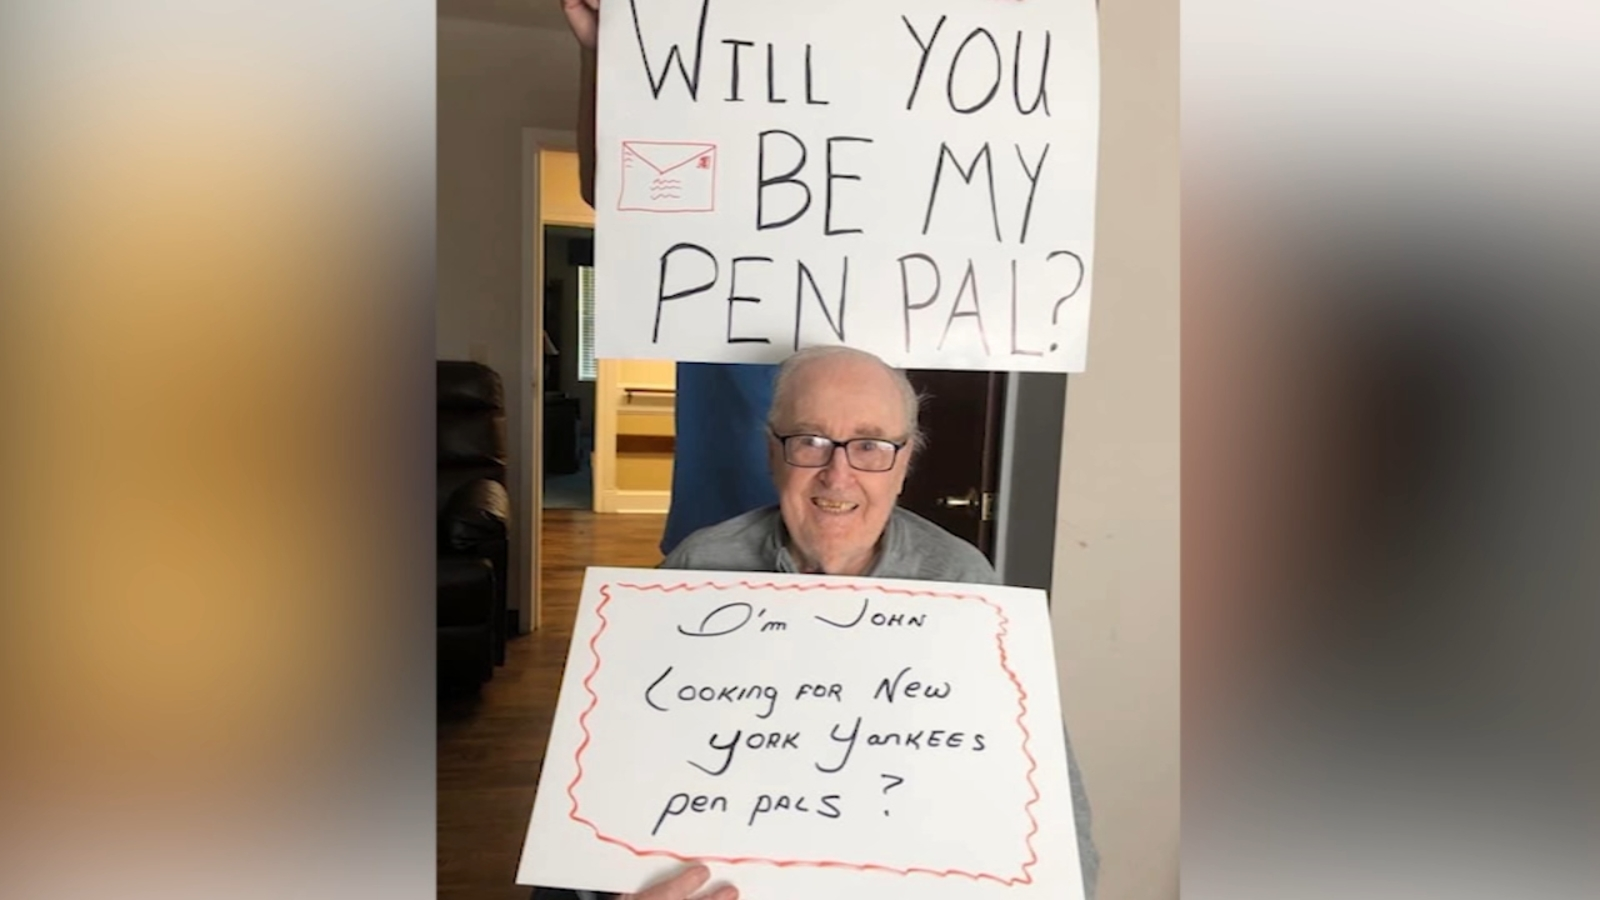 North Carolina assisted living home residents missing friends, family ask for pen pals amid COVID-19